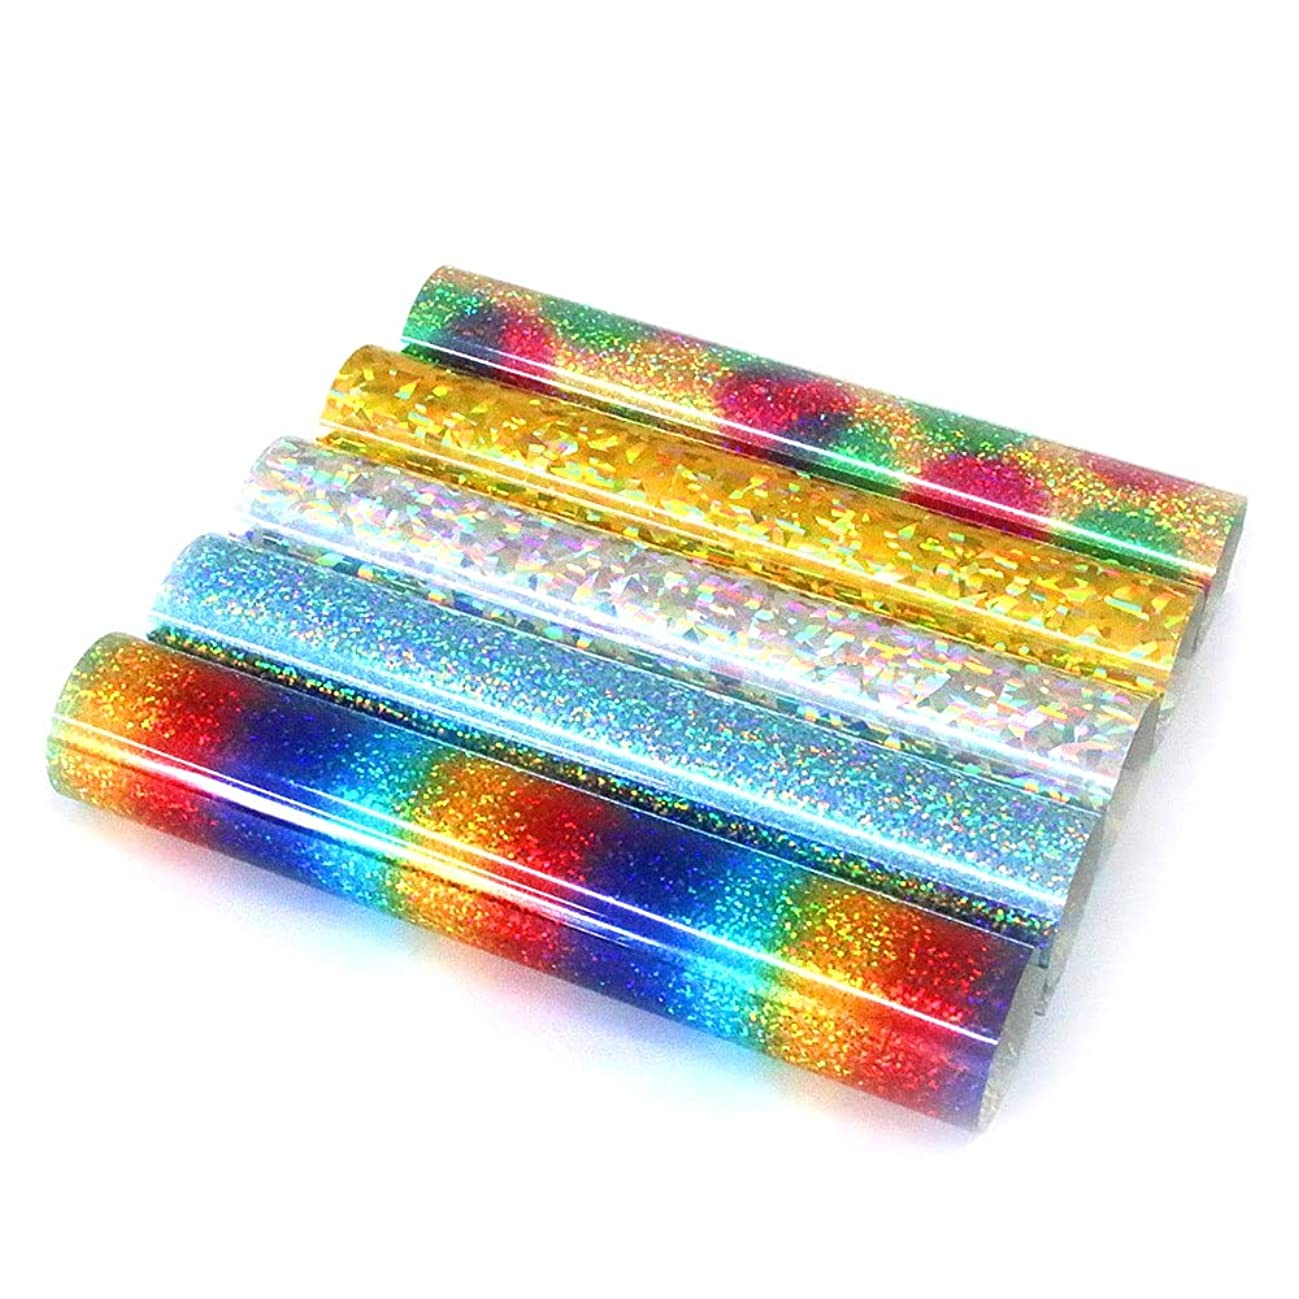 Holographic Glitter Heat Transfer Vinyl Sheets Multi-Colors Rainbow Effect Iron On Vinyl HTV Bundle for T-Shirts, Bags and Garment, 12